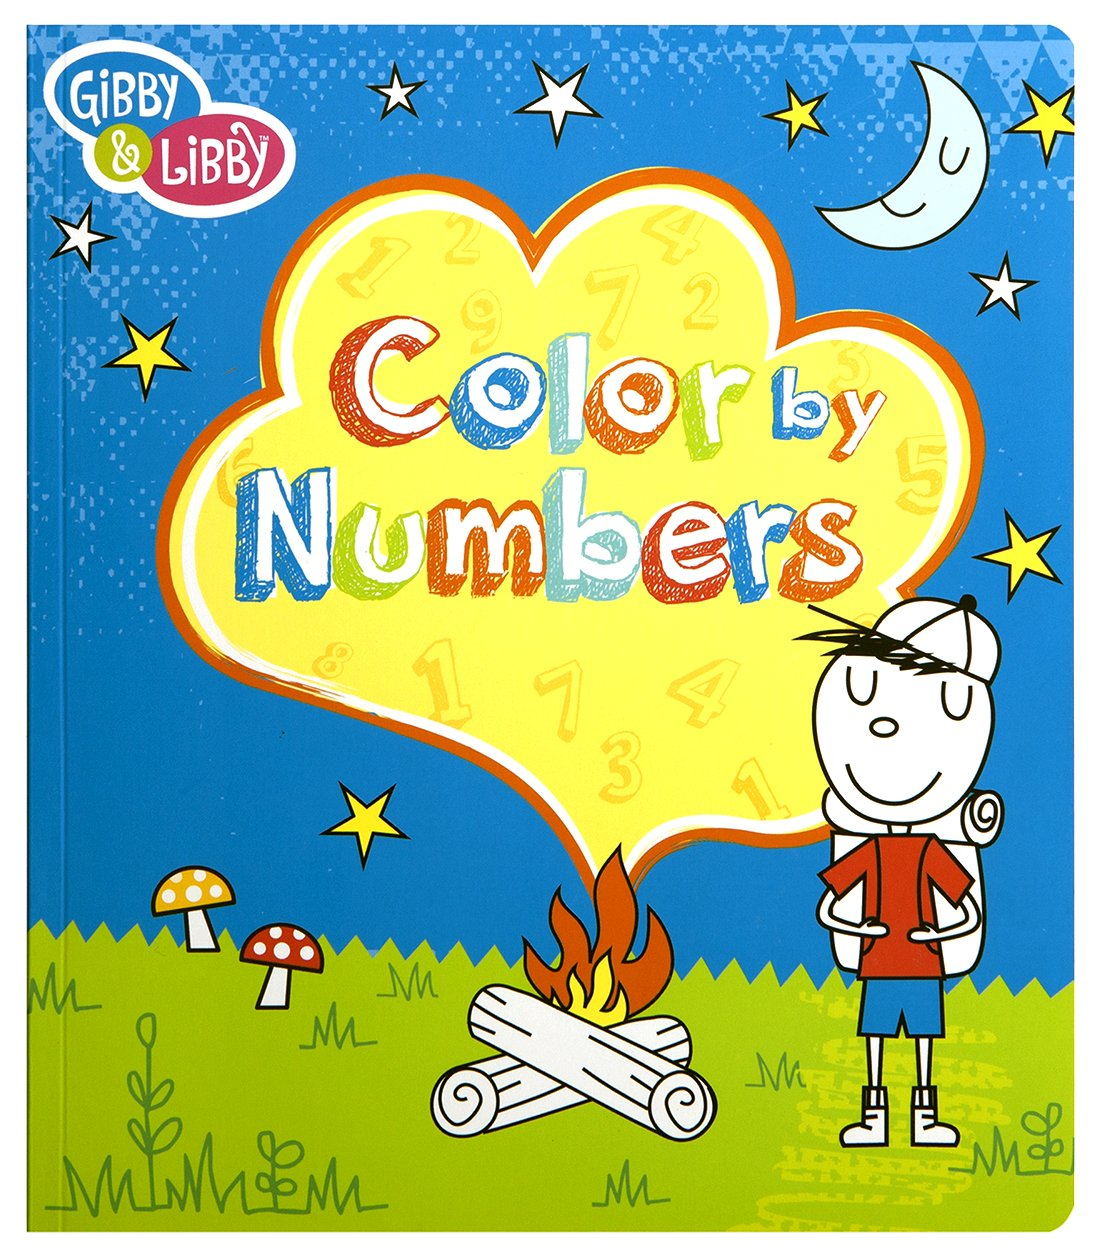 C.R Gibson Kids Color by Numbers Book for Boys 80 Pages 9.75/'/' H x 8.5/'/' W Book BCNB-14585 9.75 H x 8.5 W Book